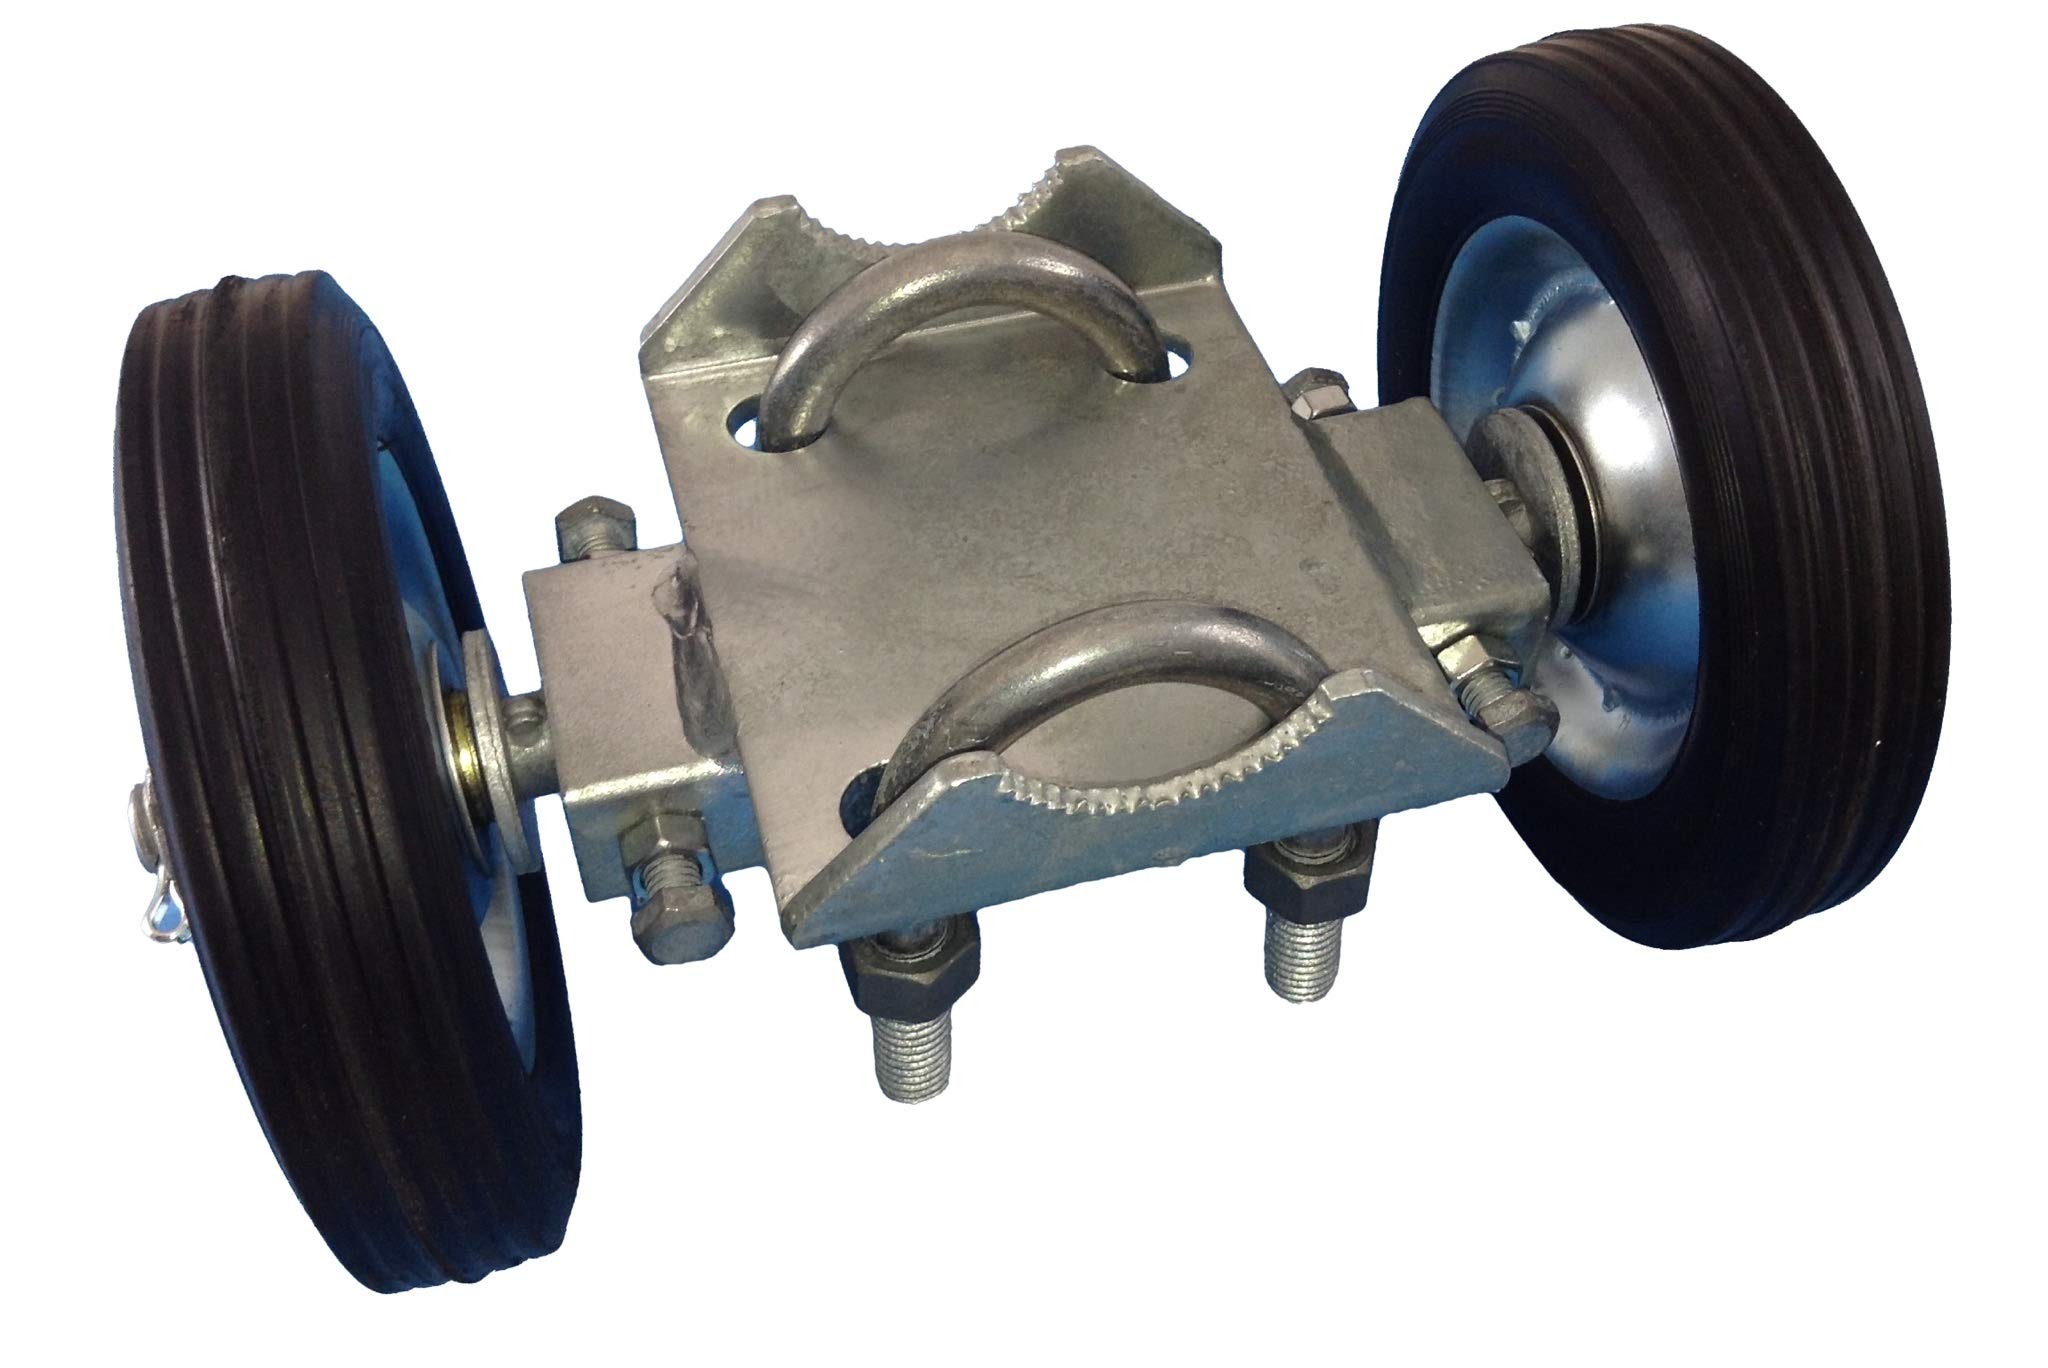 ROLLING GATE 6'' WHEEL CARRIER: for Chain Link Fence Rolling Gates - Rut Runner - 2 Rubber Wheels (axle is 6'' from wheel to wheel) Has adjustment bolts to ''track straight''. by Jake Sales (Image #1)